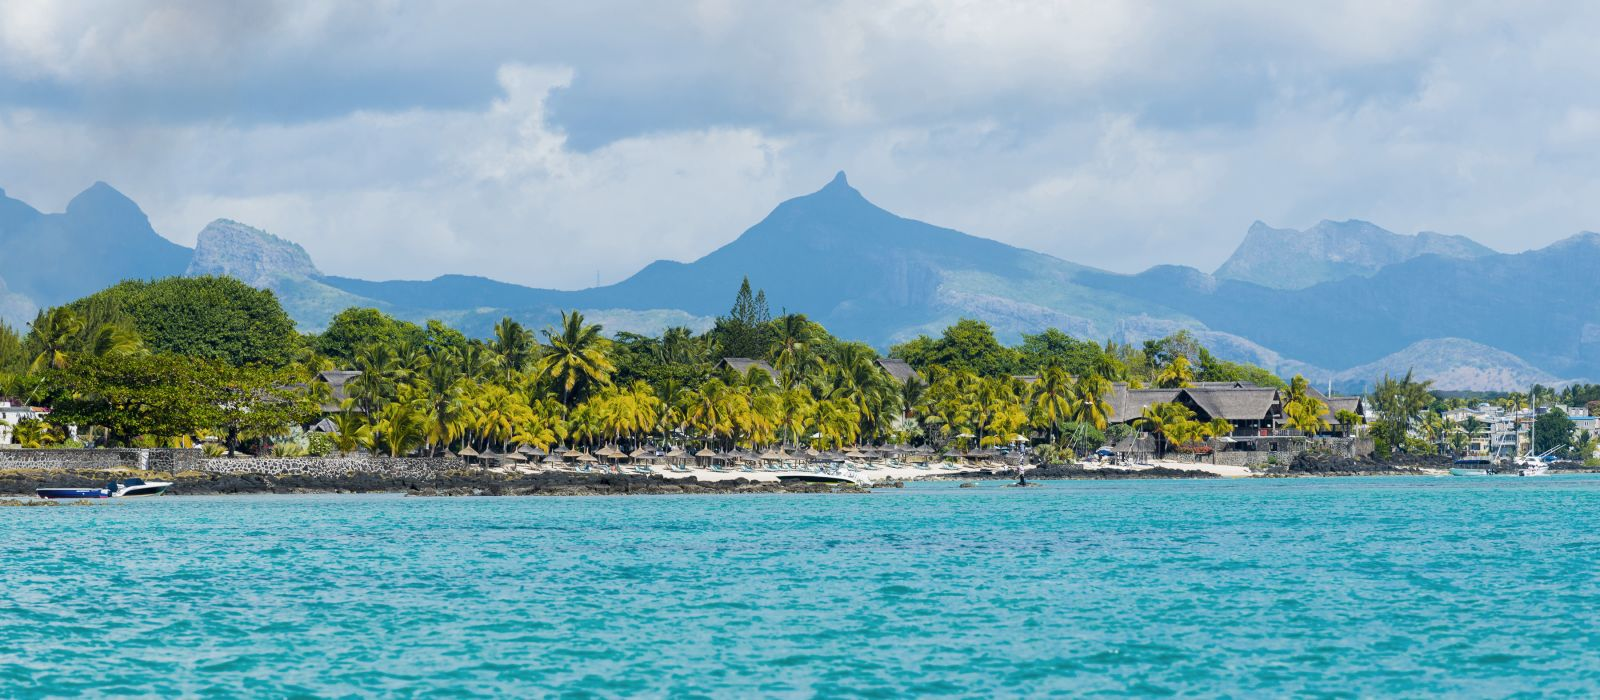 Mauritius Tour | Plan your Beach Vacation with Enchanting